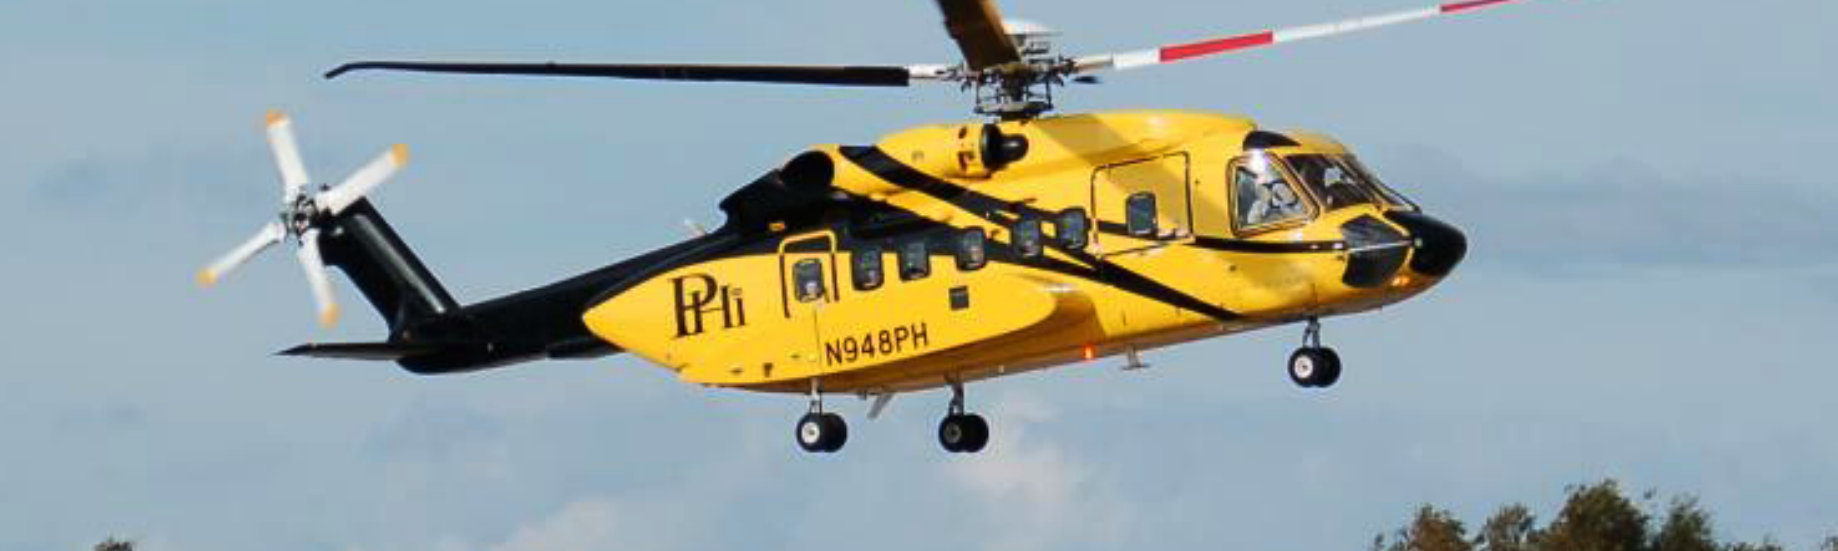 Solving the mystery of the big yellow helicopter flying over D C